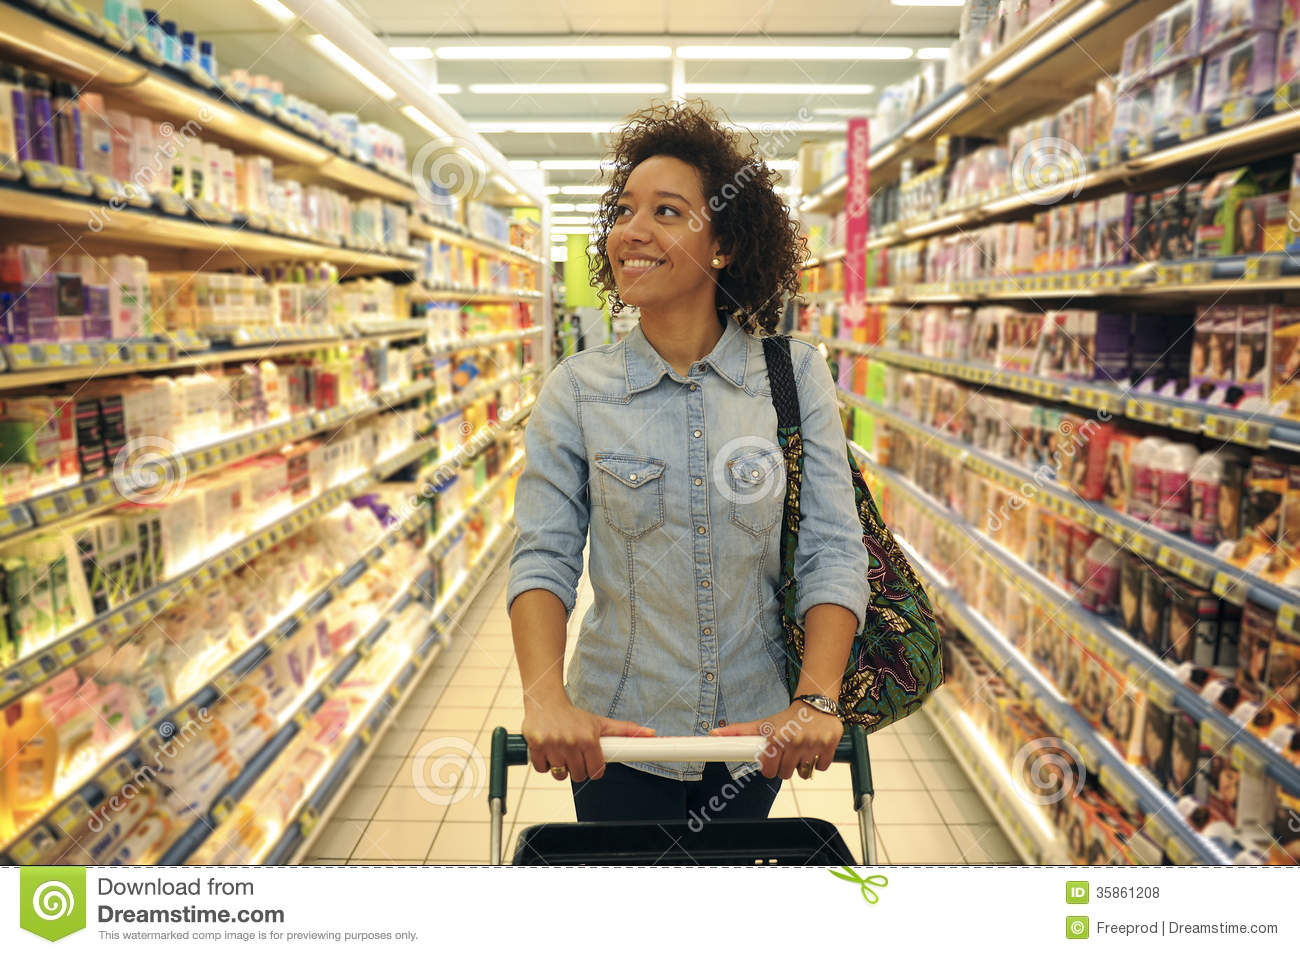 women shopping supermarket shopping cart retail grocery prod royalty free stock photos